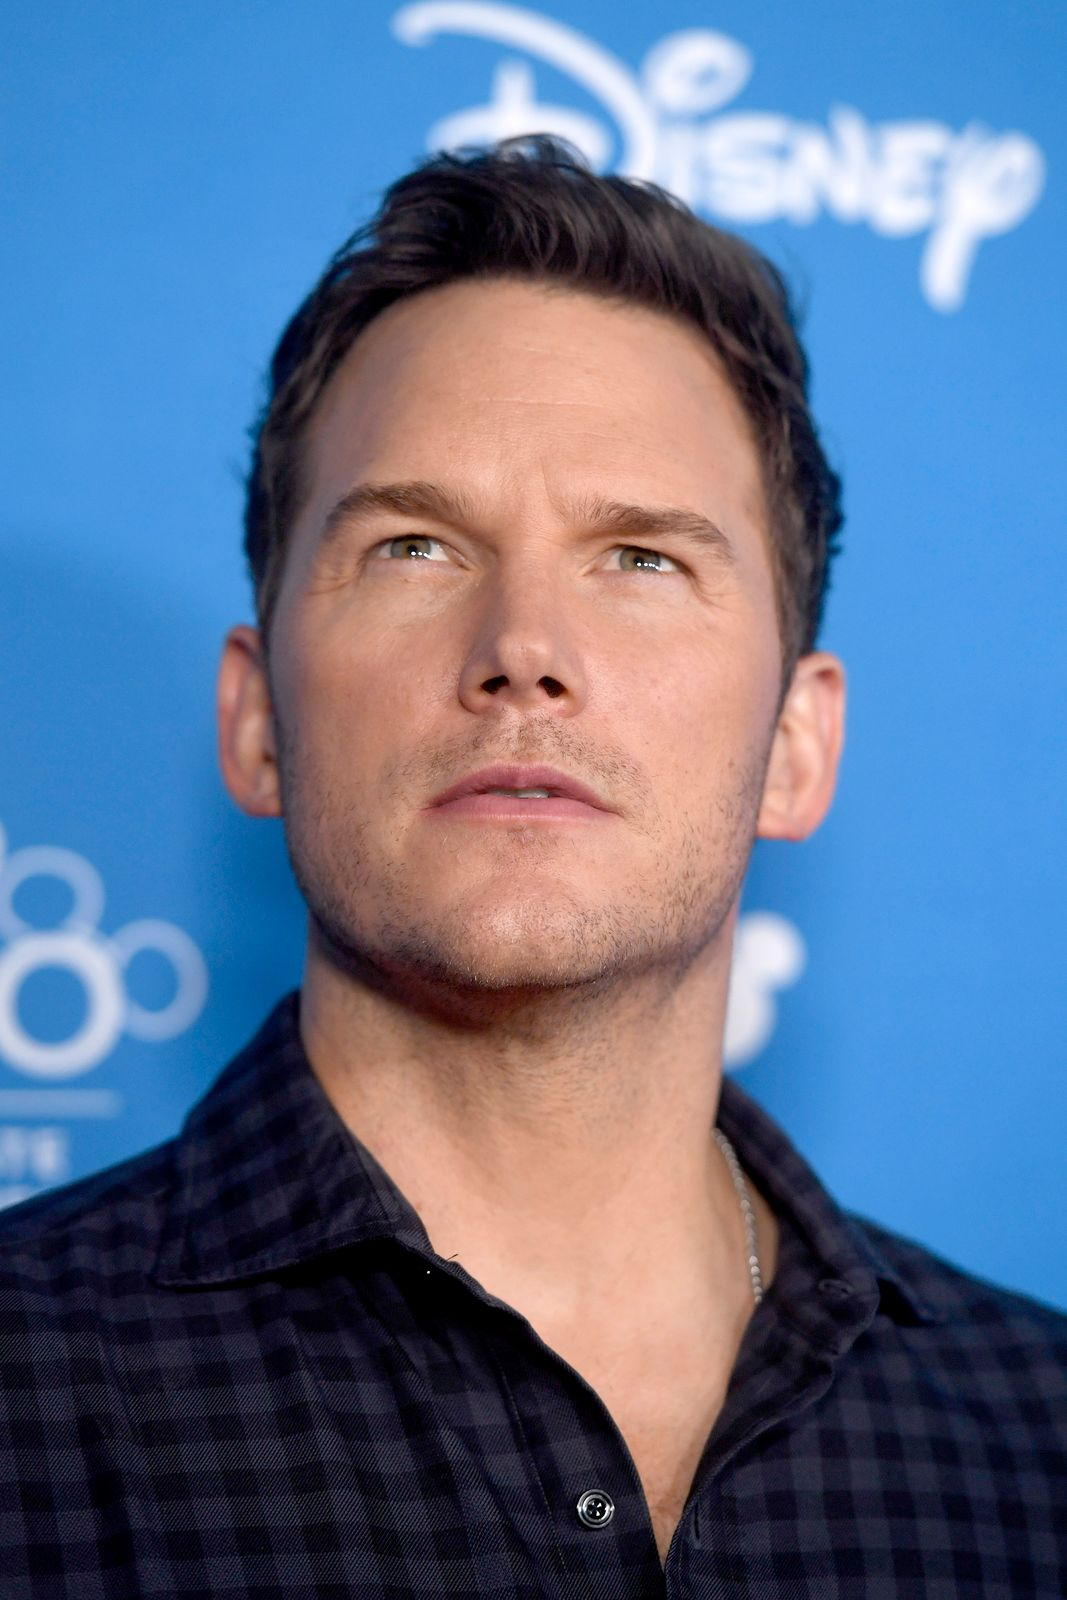 Chris Pratt at Go Behind The Scenes with Walt Disney Studios during D23 Expo on August 24, 2019, in Anaheim, California | Photo: Frazer Harrison/Getty Images